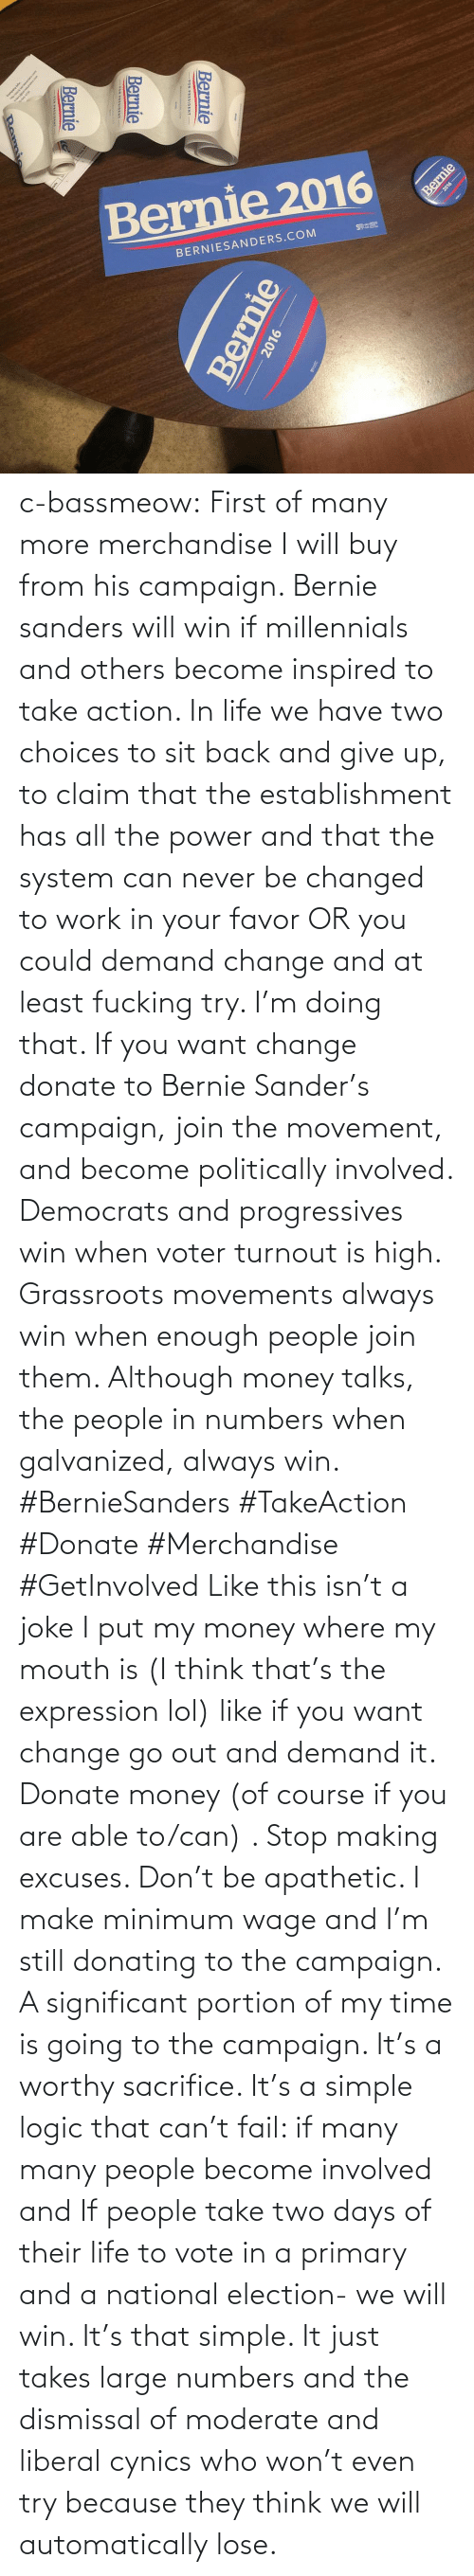 Take Action: Bernie 2016  BERNIESANDERS.COM  Bernie  Bernie  Bernie  2016 -  Bernie  2016  Bernie c-bassmeow:  First of many more merchandise I will buy from his campaign. Bernie sanders will win if millennials and others become inspired to take action. In life we have two choices to sit back and give up, to claim that the establishment has all the power and that the system can never be changed to work in your favor OR you could demand change and at least fucking try. I'm doing that. If you want change donate to Bernie Sander's campaign, join the movement, and become politically involved. Democrats and progressives win when voter turnout is high. Grassroots movements always win when enough people join them. Although money talks, the people in numbers when galvanized, always win. #BernieSanders #TakeAction #Donate #Merchandise #GetInvolved  Like this isn't a joke I put my money where my mouth is (I think that's the expression lol) like if you want change go out and demand it. Donate money (of course if you are able to/can) . Stop making excuses. Don't be apathetic. I make minimum wage and I'm still donating to the campaign. A significant portion of my time is going to the campaign. It's a worthy sacrifice. It's a simple logic that can't fail: if many many people become involved and If people take two days of their life to vote in a primary and a national election- we will win. It's that simple. It just takes large numbers and the dismissal of moderate and liberal cynics who won't even try because they think we will automatically lose.